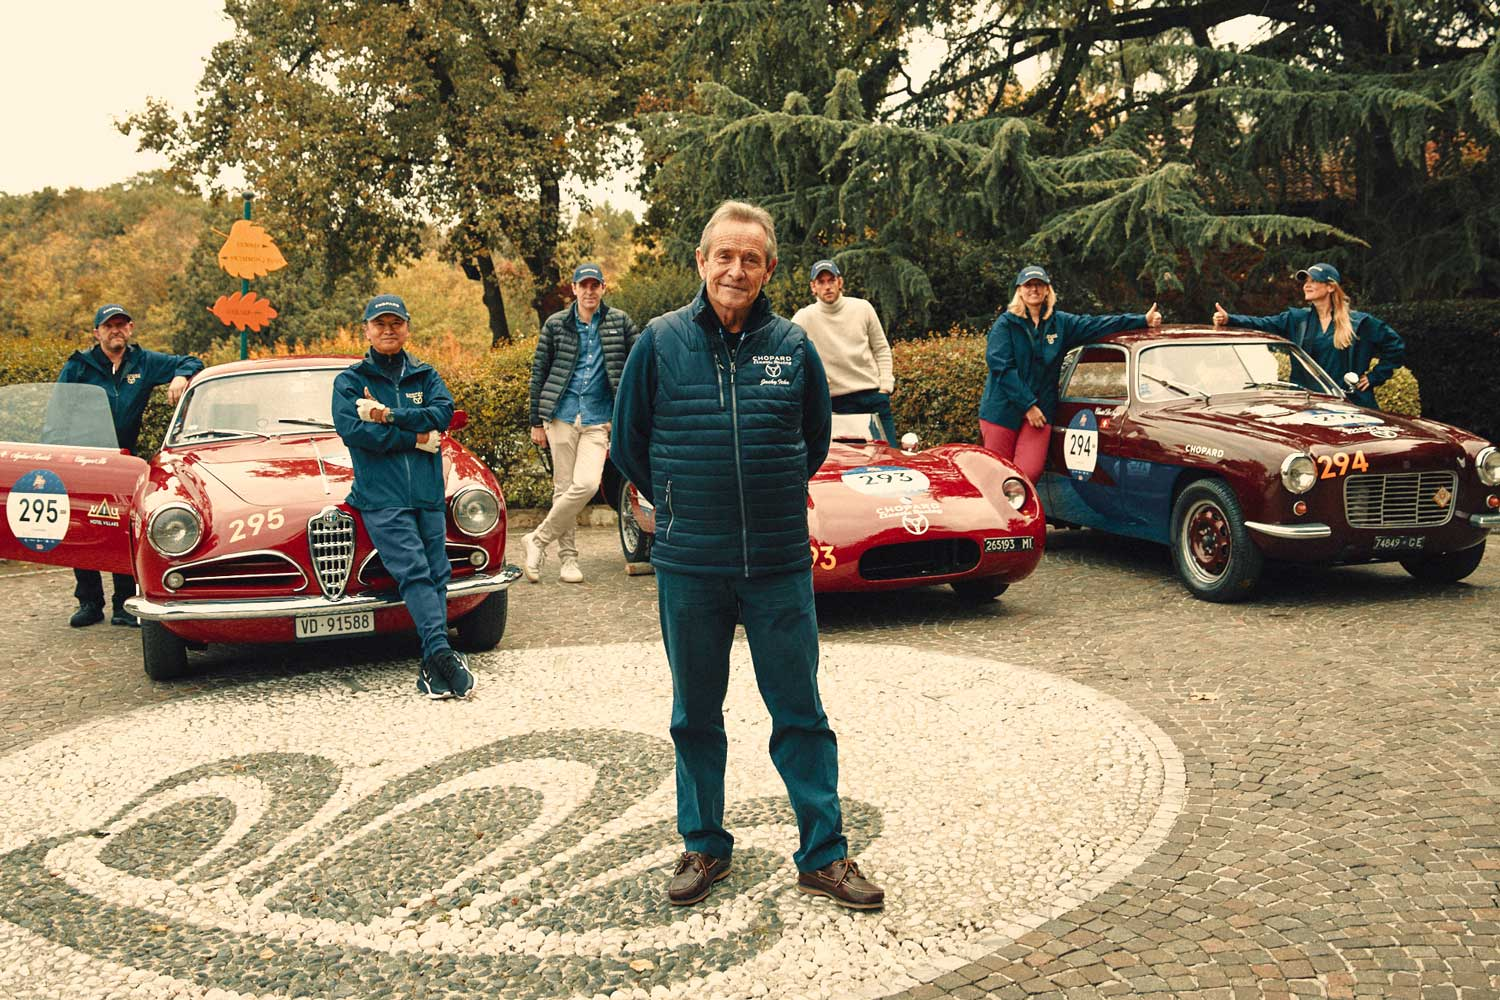 Chopard team drivers before the start of the 1000 Miglia 2020 in Brescia, Italy (Photo by Adam Fussell)